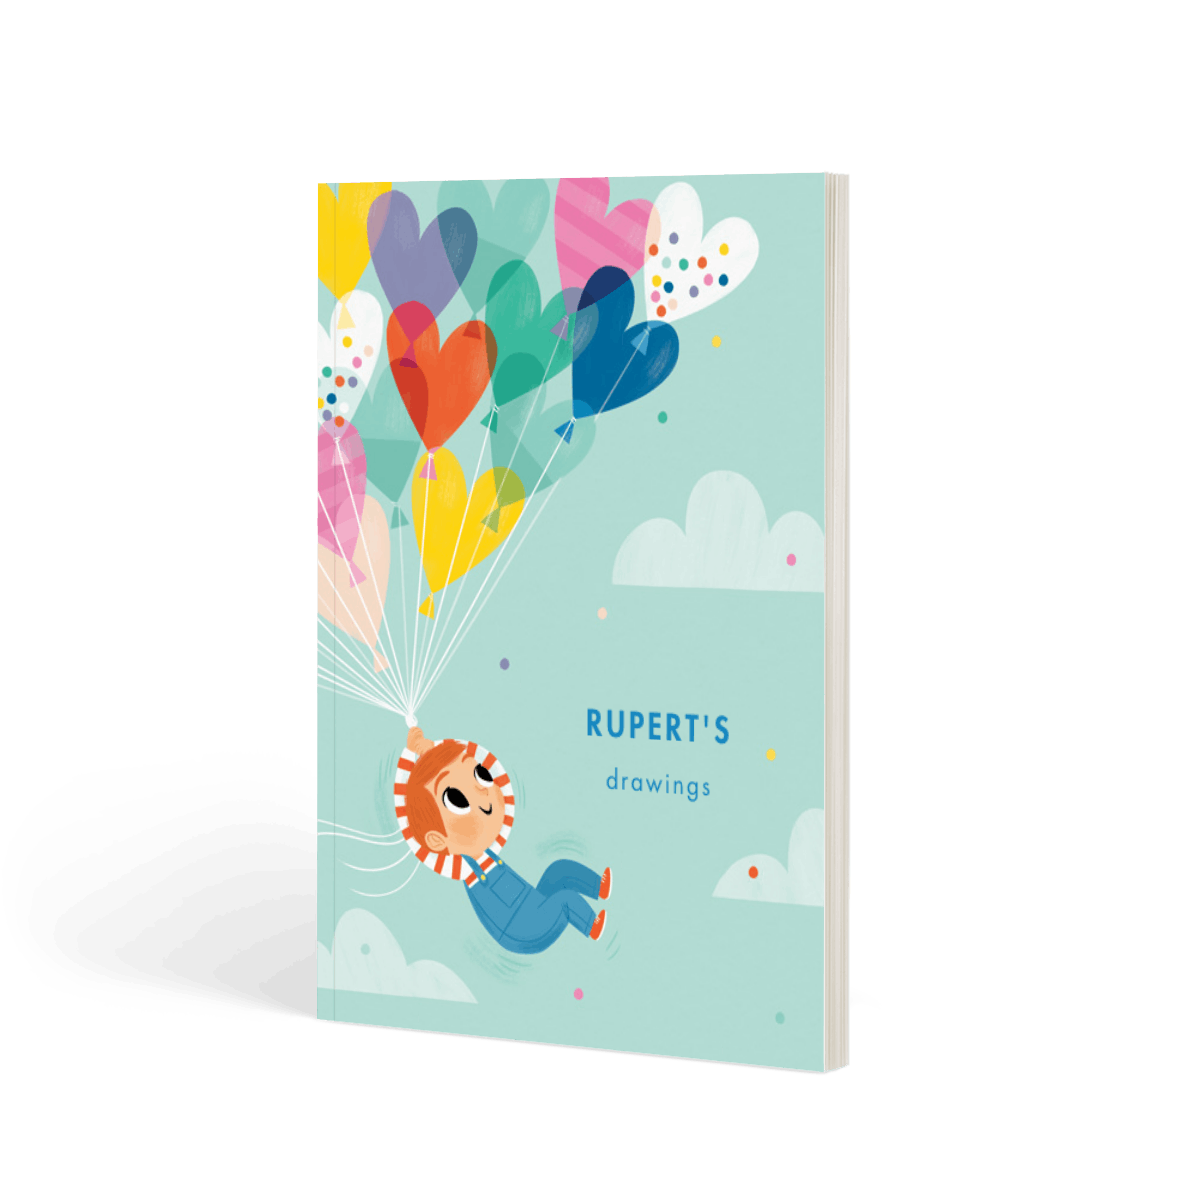 Https%3a%2f%2fwww.papier.com%2fproduct image%2f31721%2f3%2fballoon boy iv 7969 front 1511526598.png?ixlib=rb 1.1